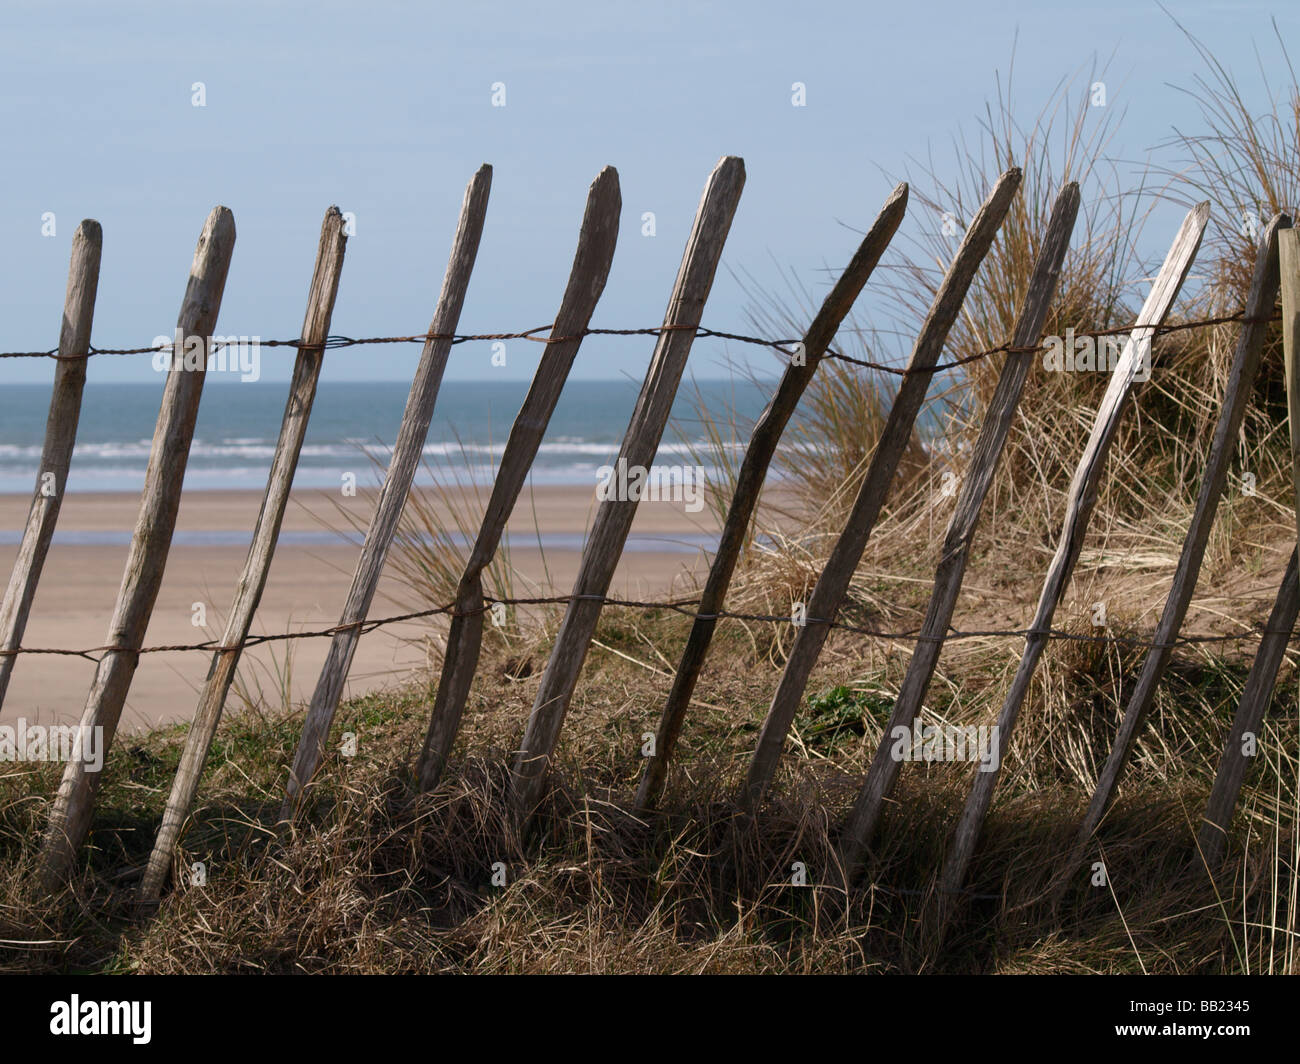 Uncategorized Old Fencing old wooden fence fencing off the sand dunes from beach stock beach